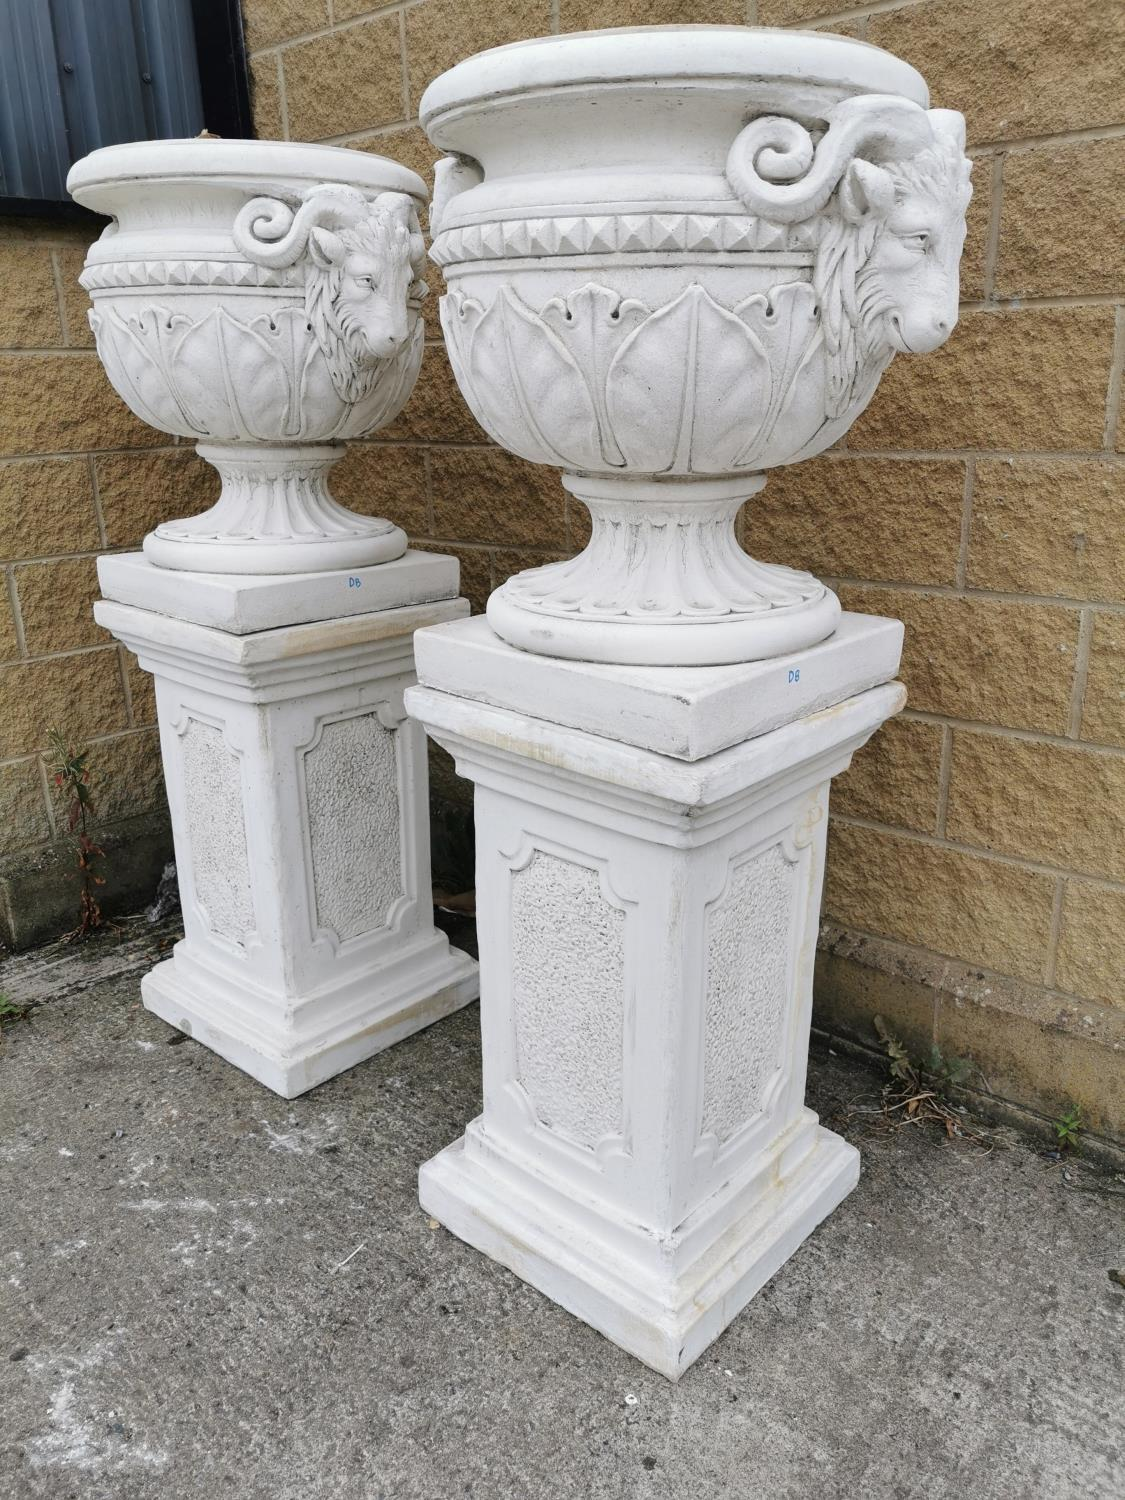 Pair of moulded stone Urns on pedestals. - Image 3 of 3